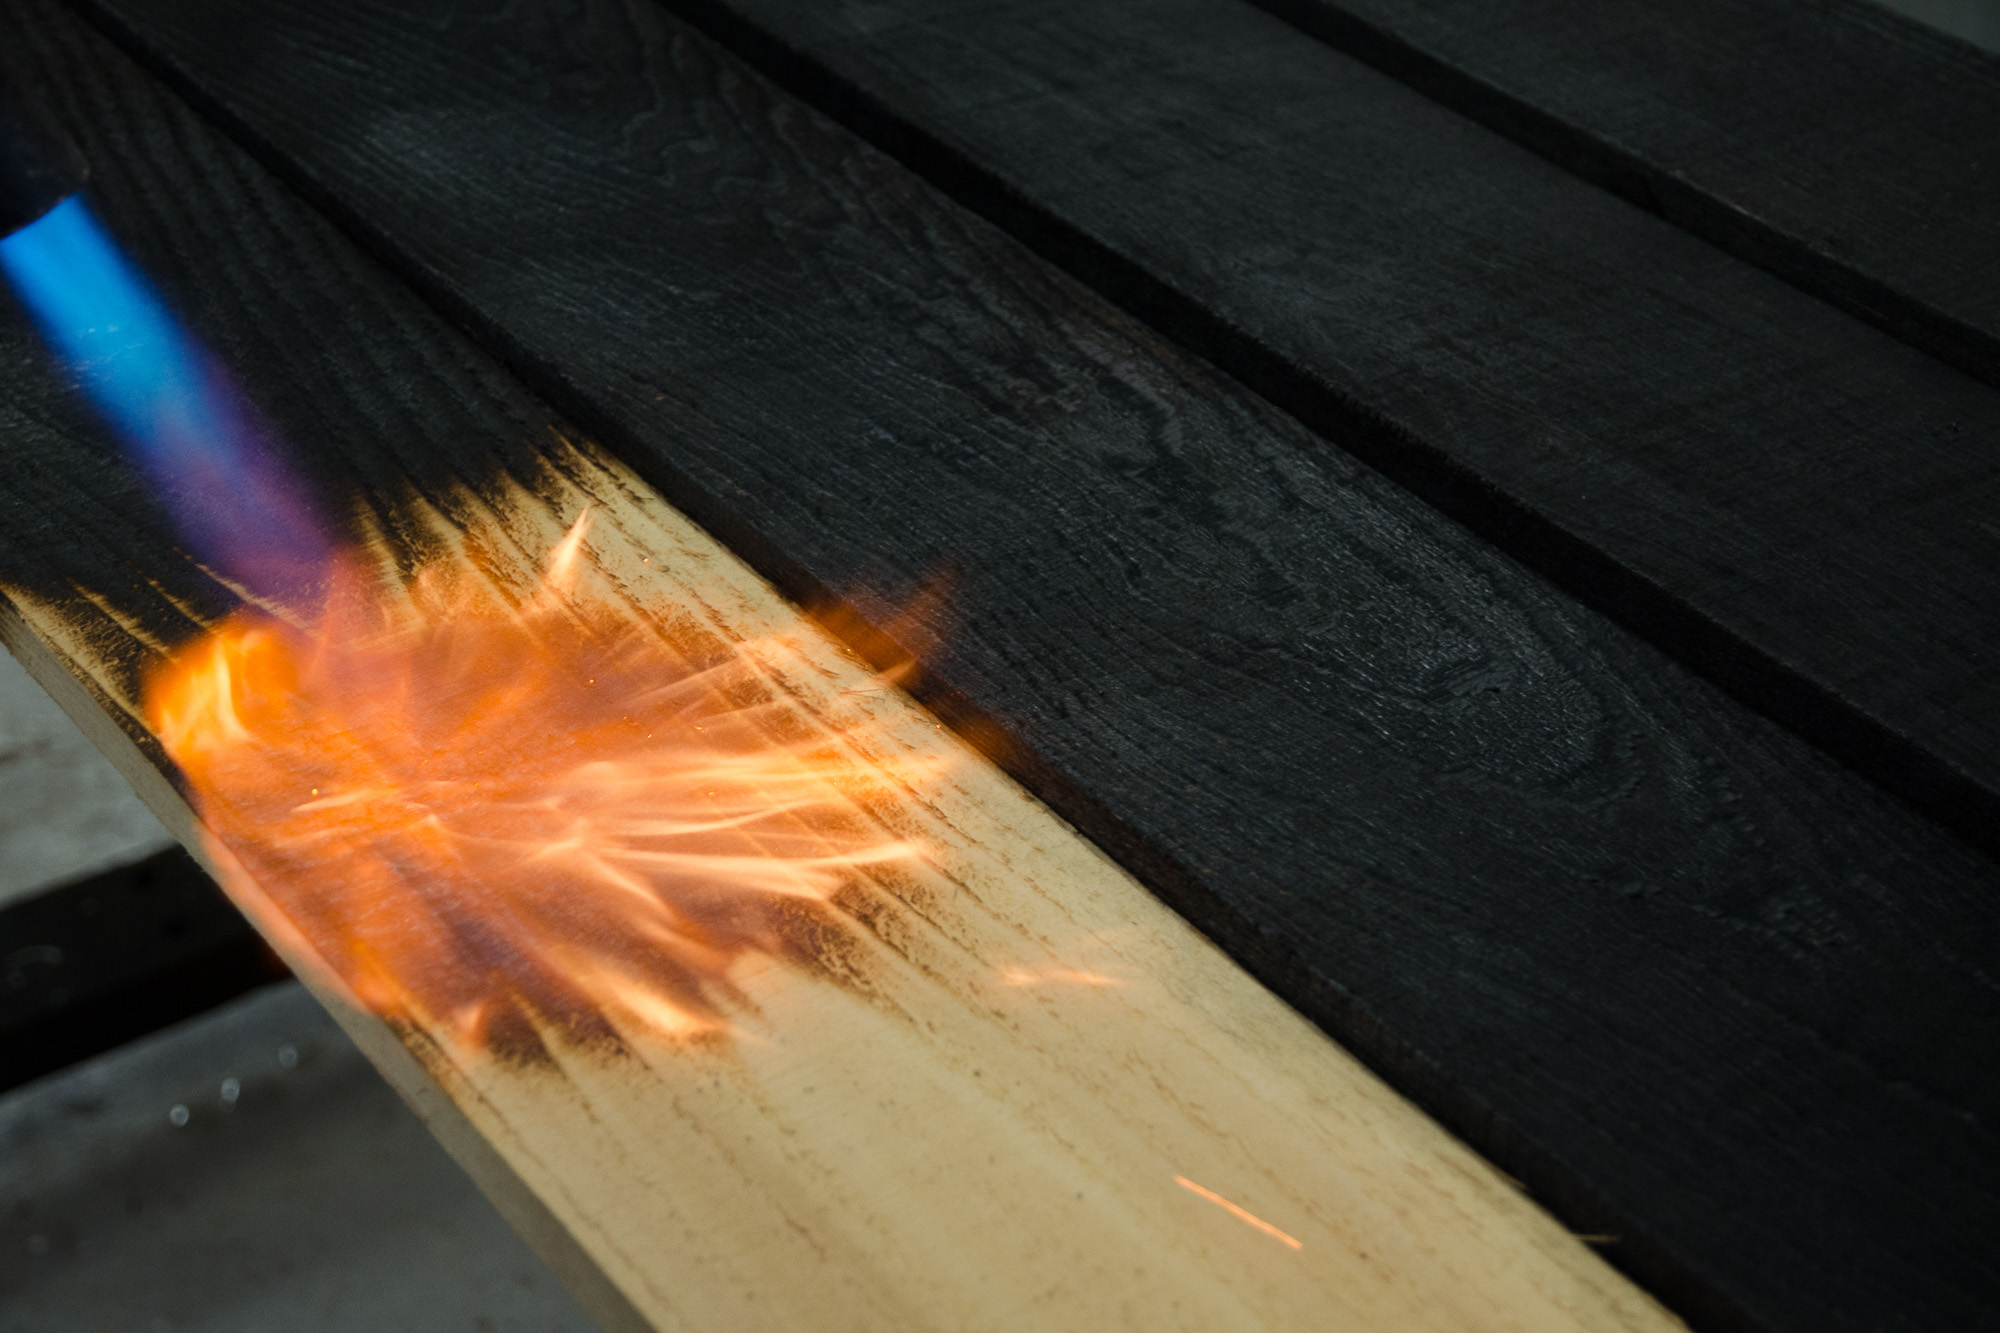 burning wood using blow torch to make shou sugi ban cladding